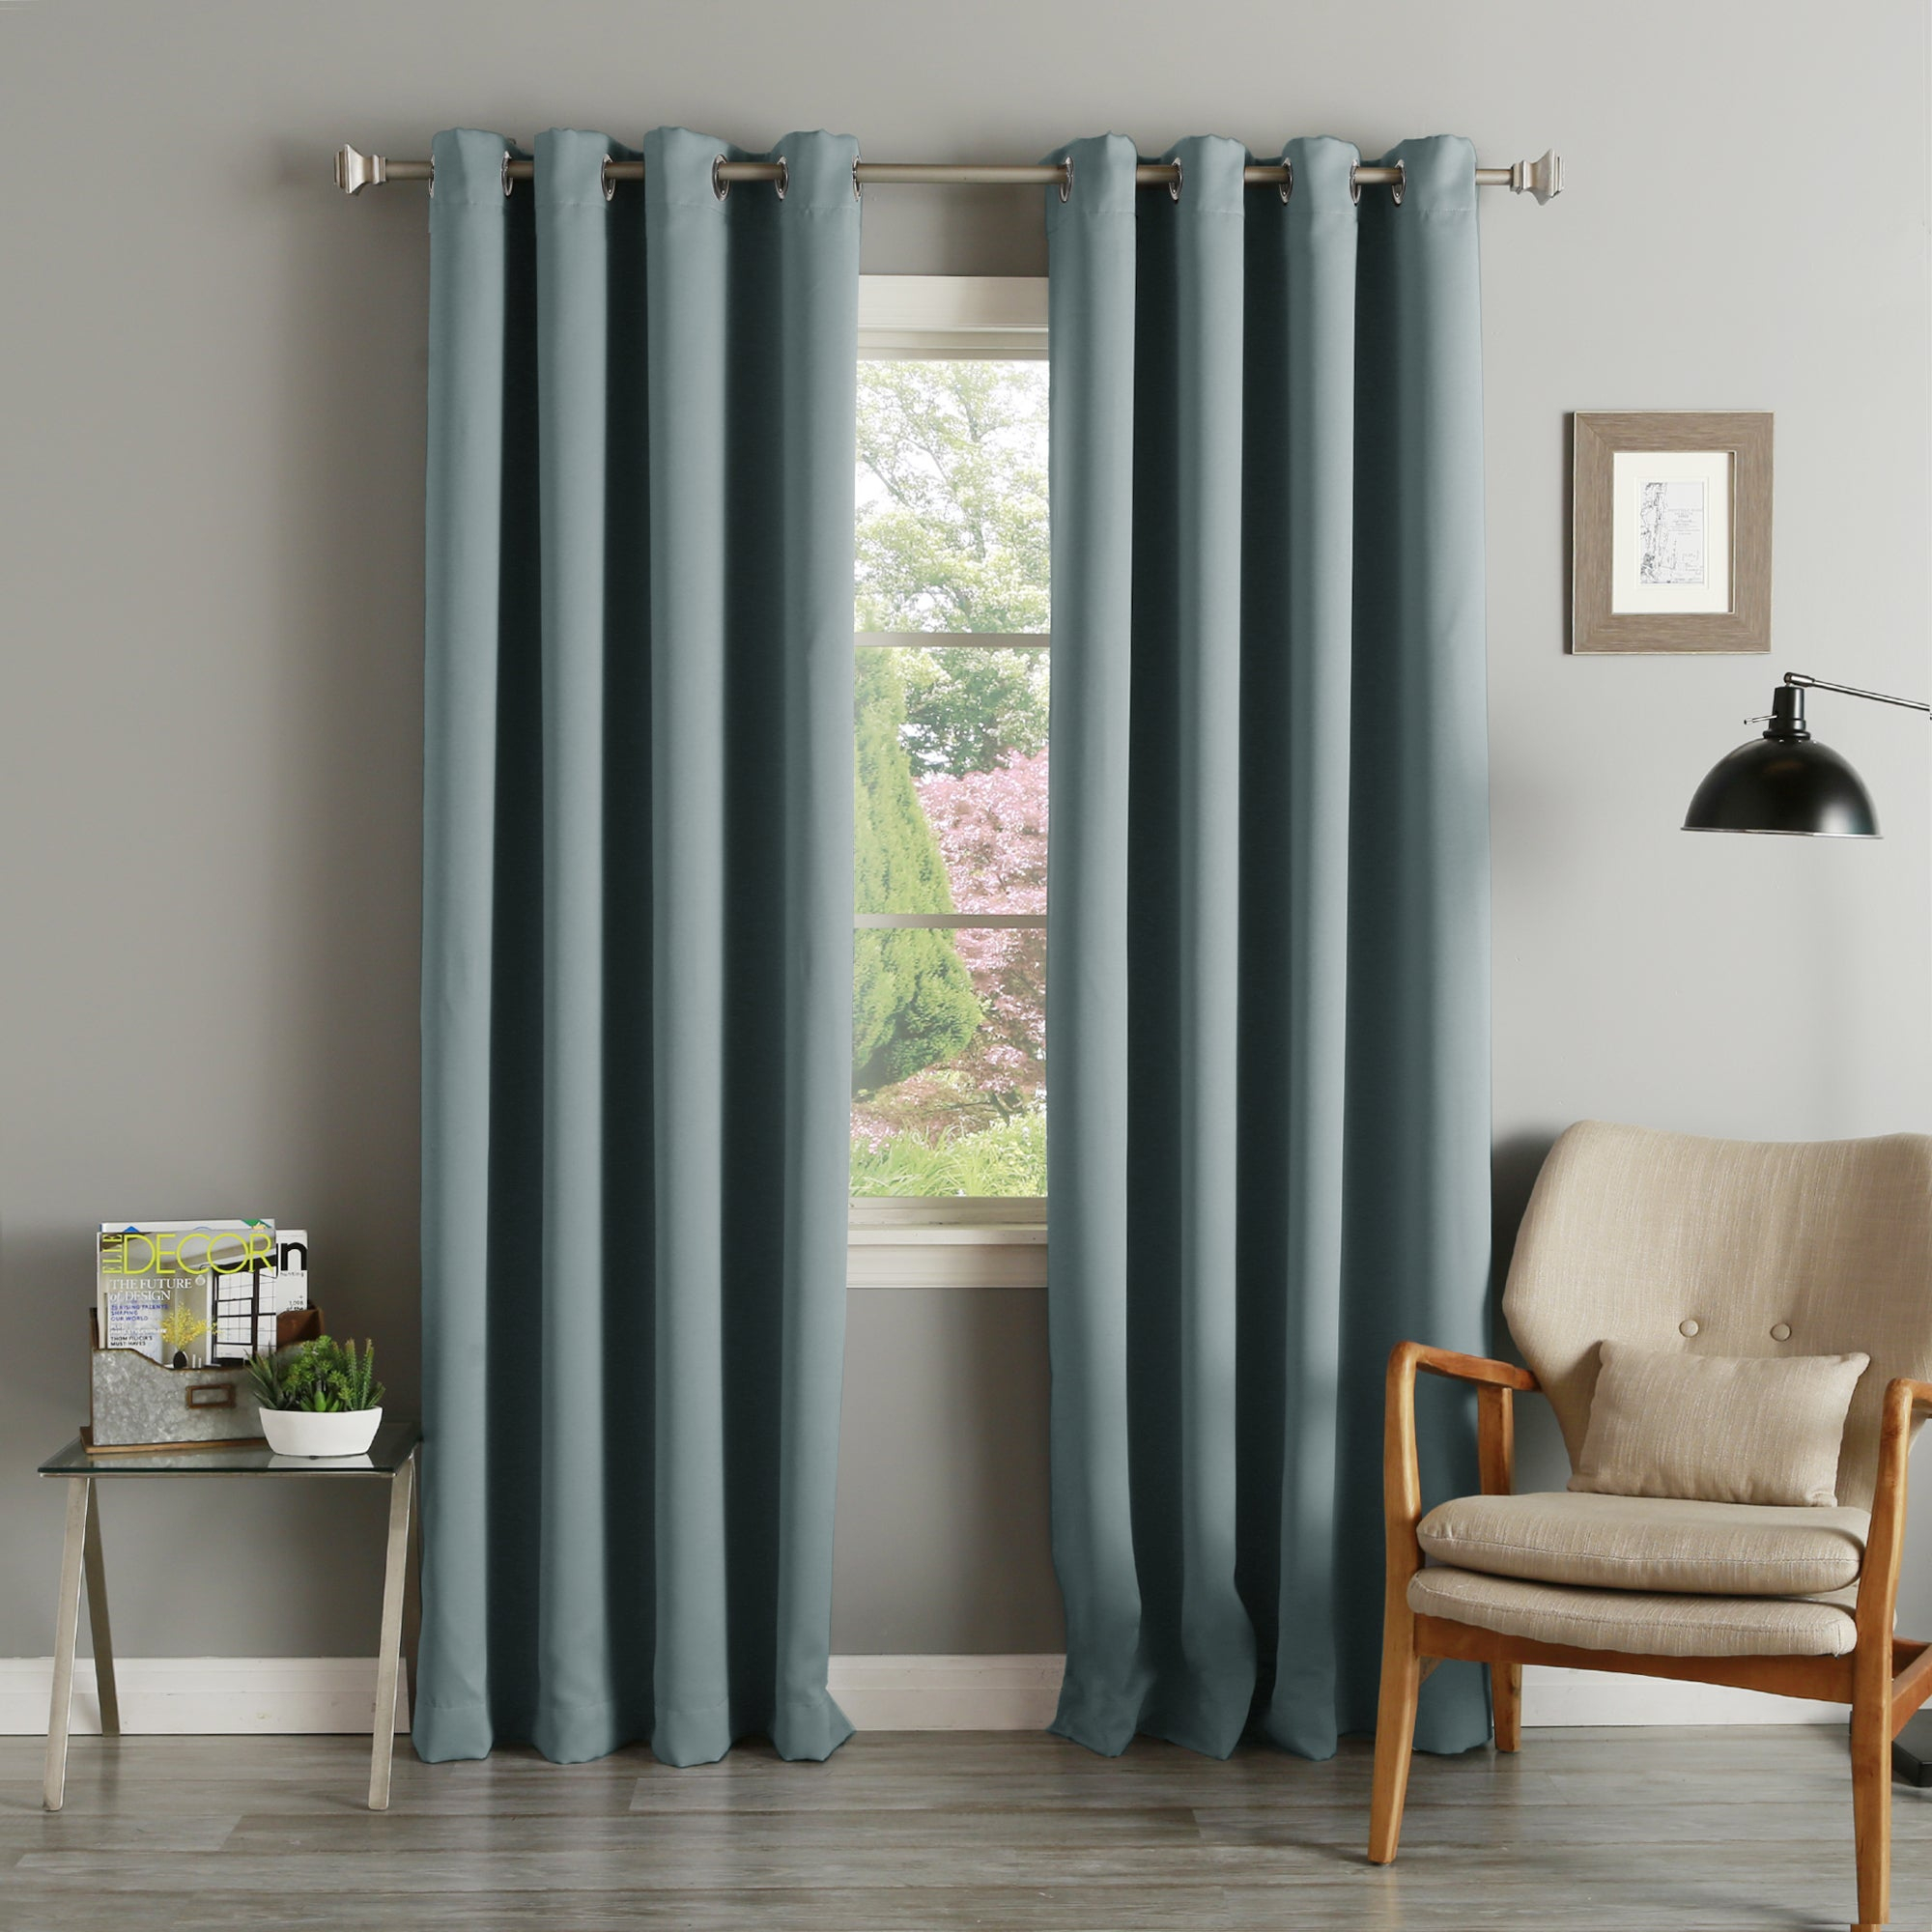 Aurora Home Silvertone Grommet Thermal Insulated Blackout Curtain Panel Pair With Silvertone Grommet Thermal Insulated Blackout Curtain Panel Pairs (View 2 of 30)